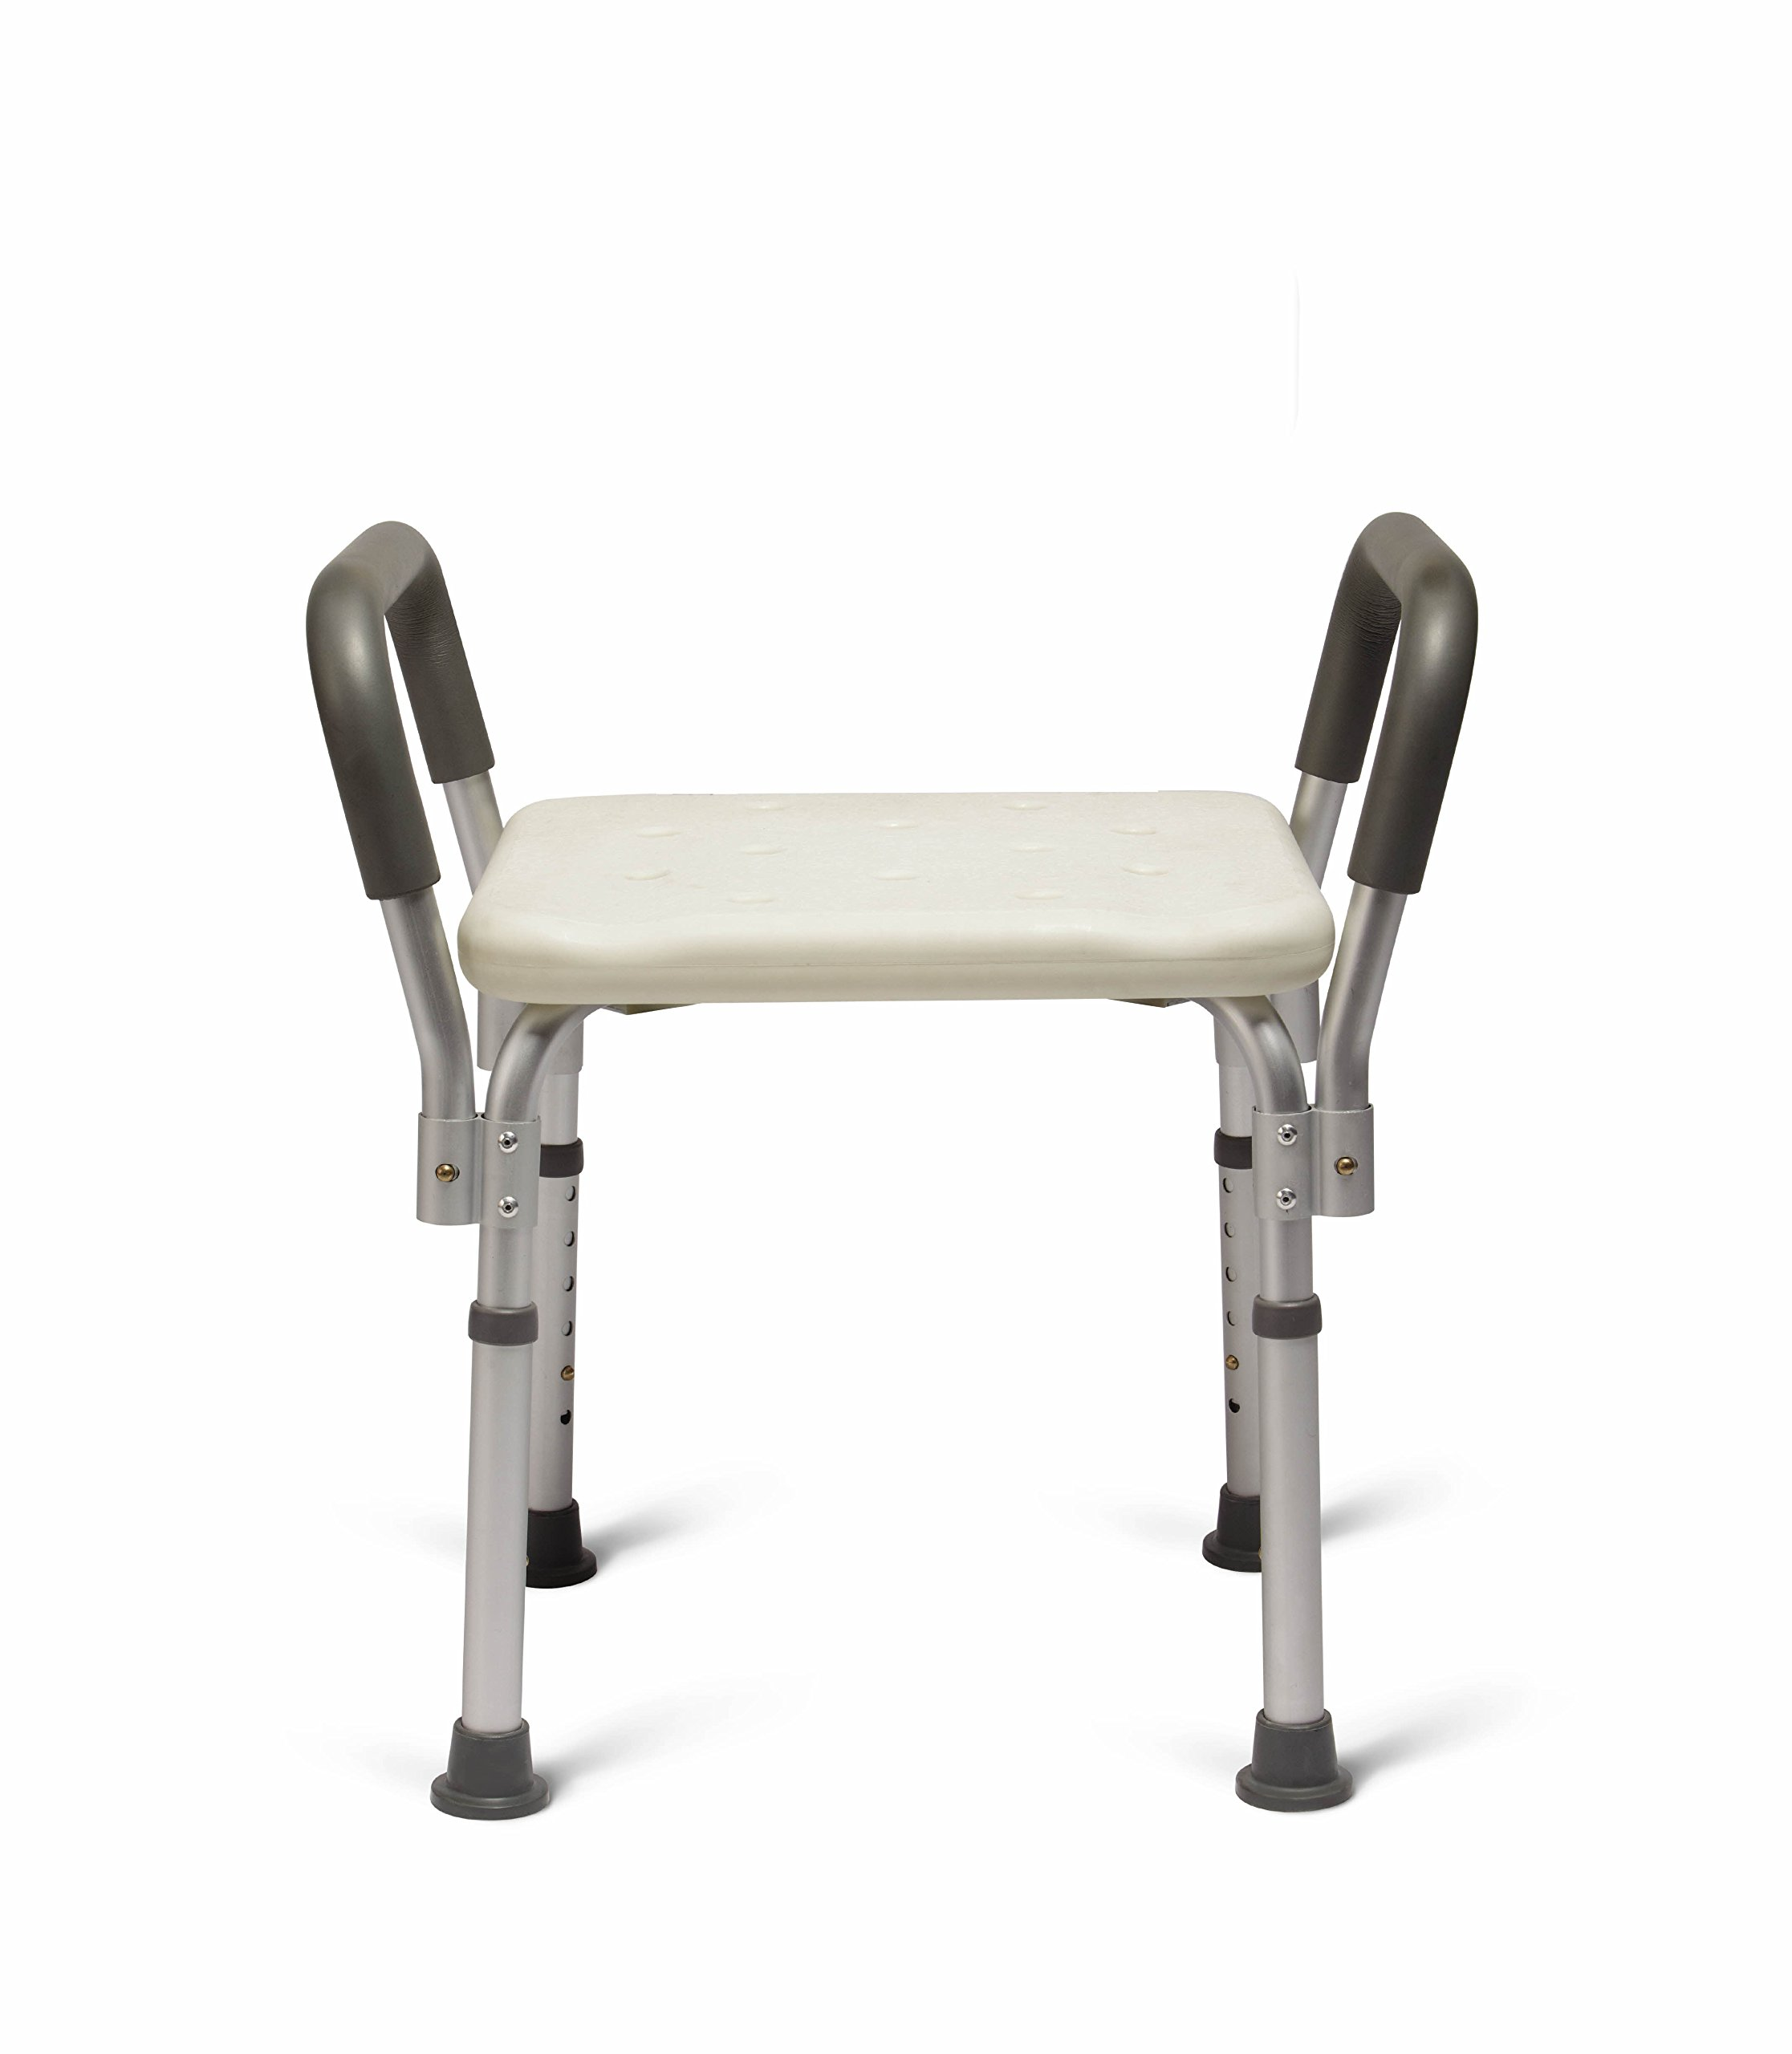 Medline Bath Bench Shower Seat with Padded Armrests, Great for Bathtubs, Supports up to 350 lbs